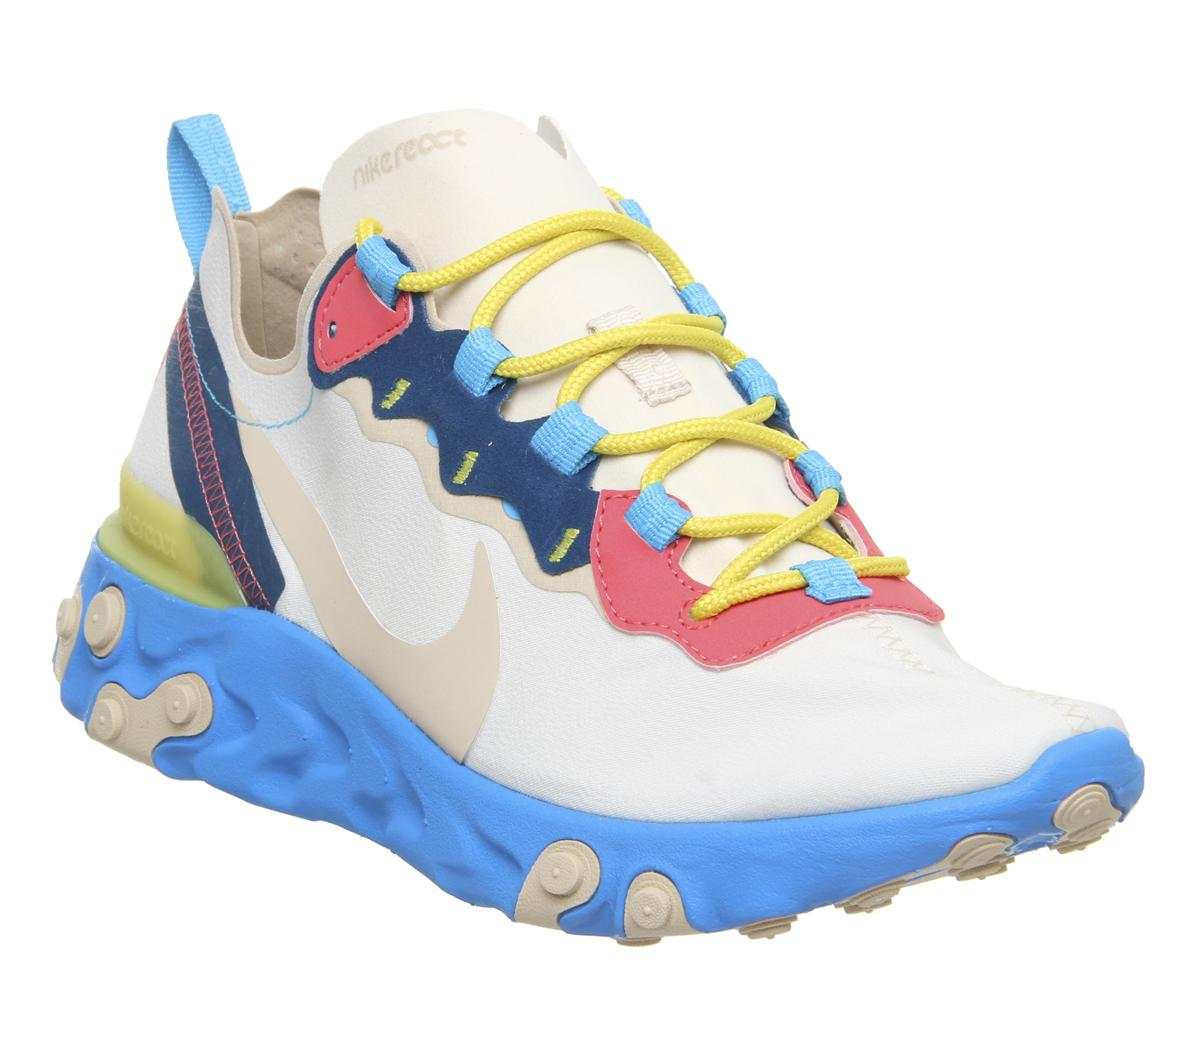 Nike React Element 55 Trainers Light